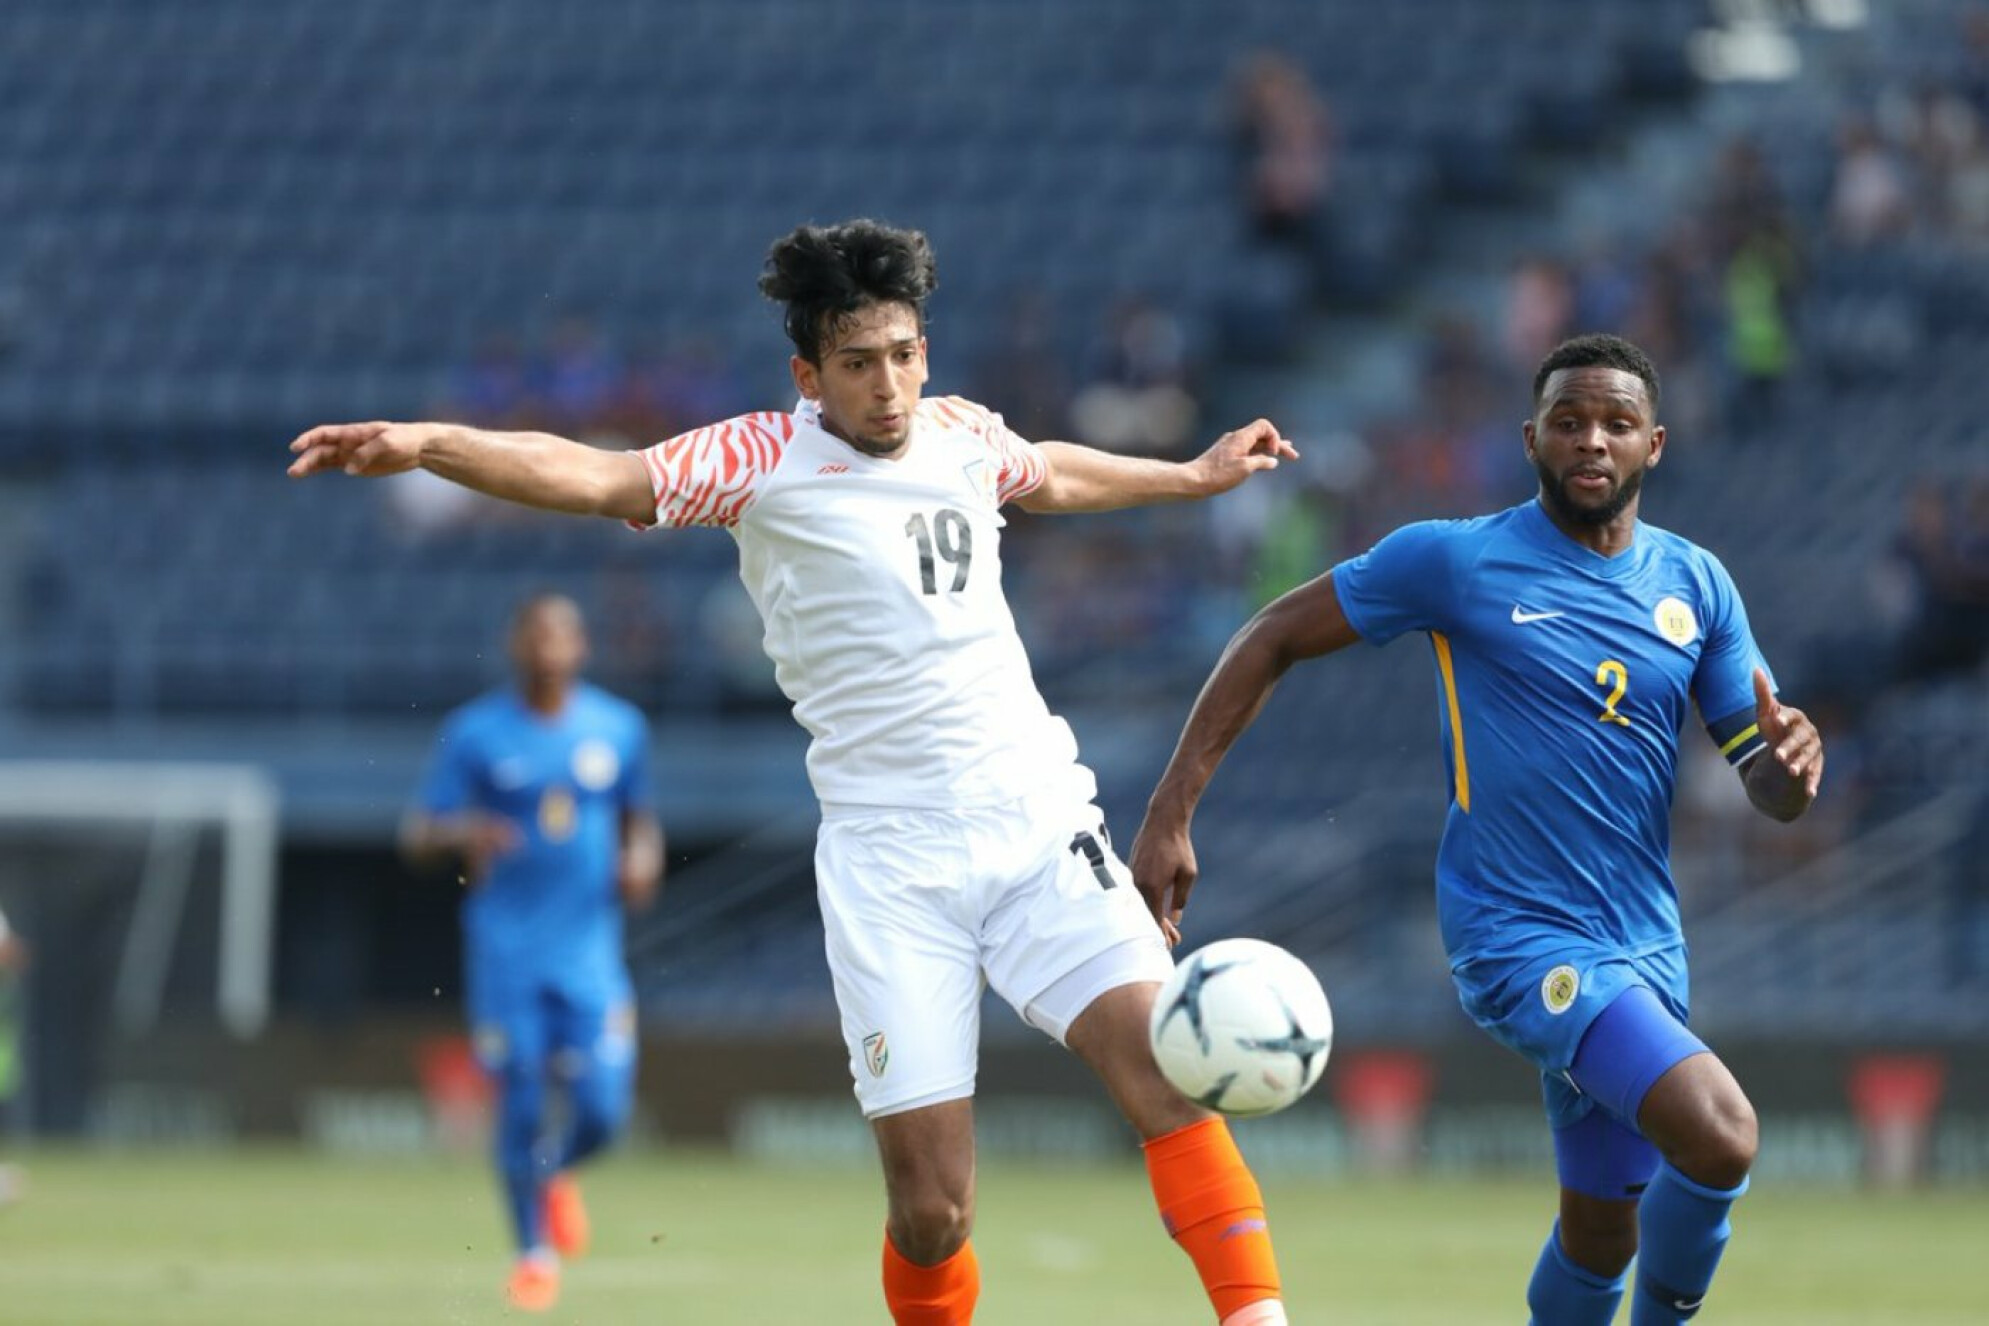 Tactical breakdown of Curacao vs India: A game of two halves